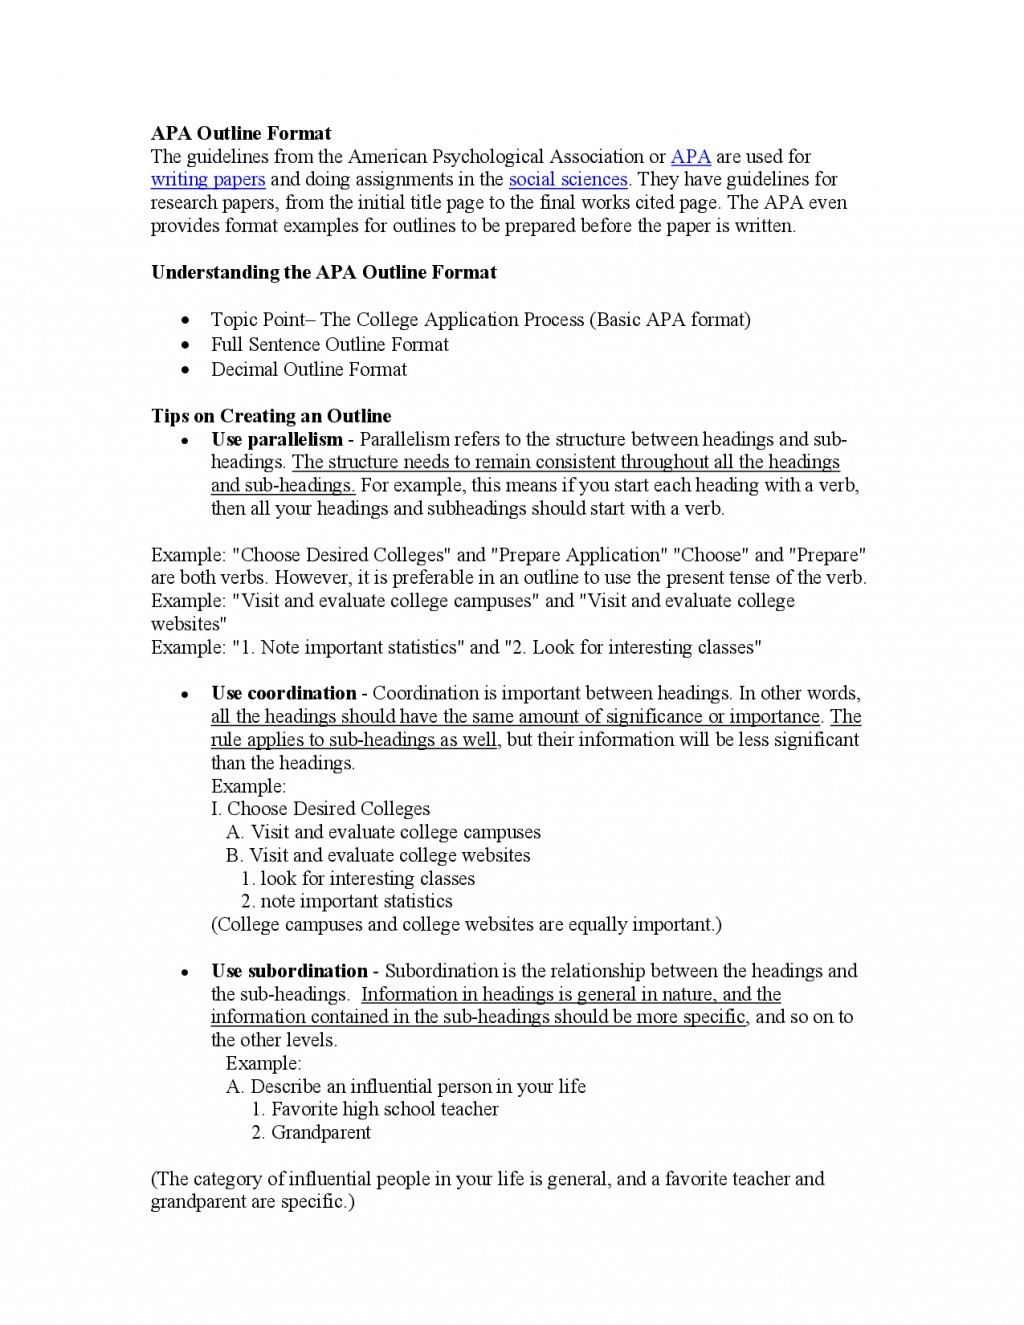 016 Research Paper 20examples Of Outlines For Papers In Apa Format Best Photos Style Outline Example Paper20 1024x1325 Dreaded Examples Template Sample Large